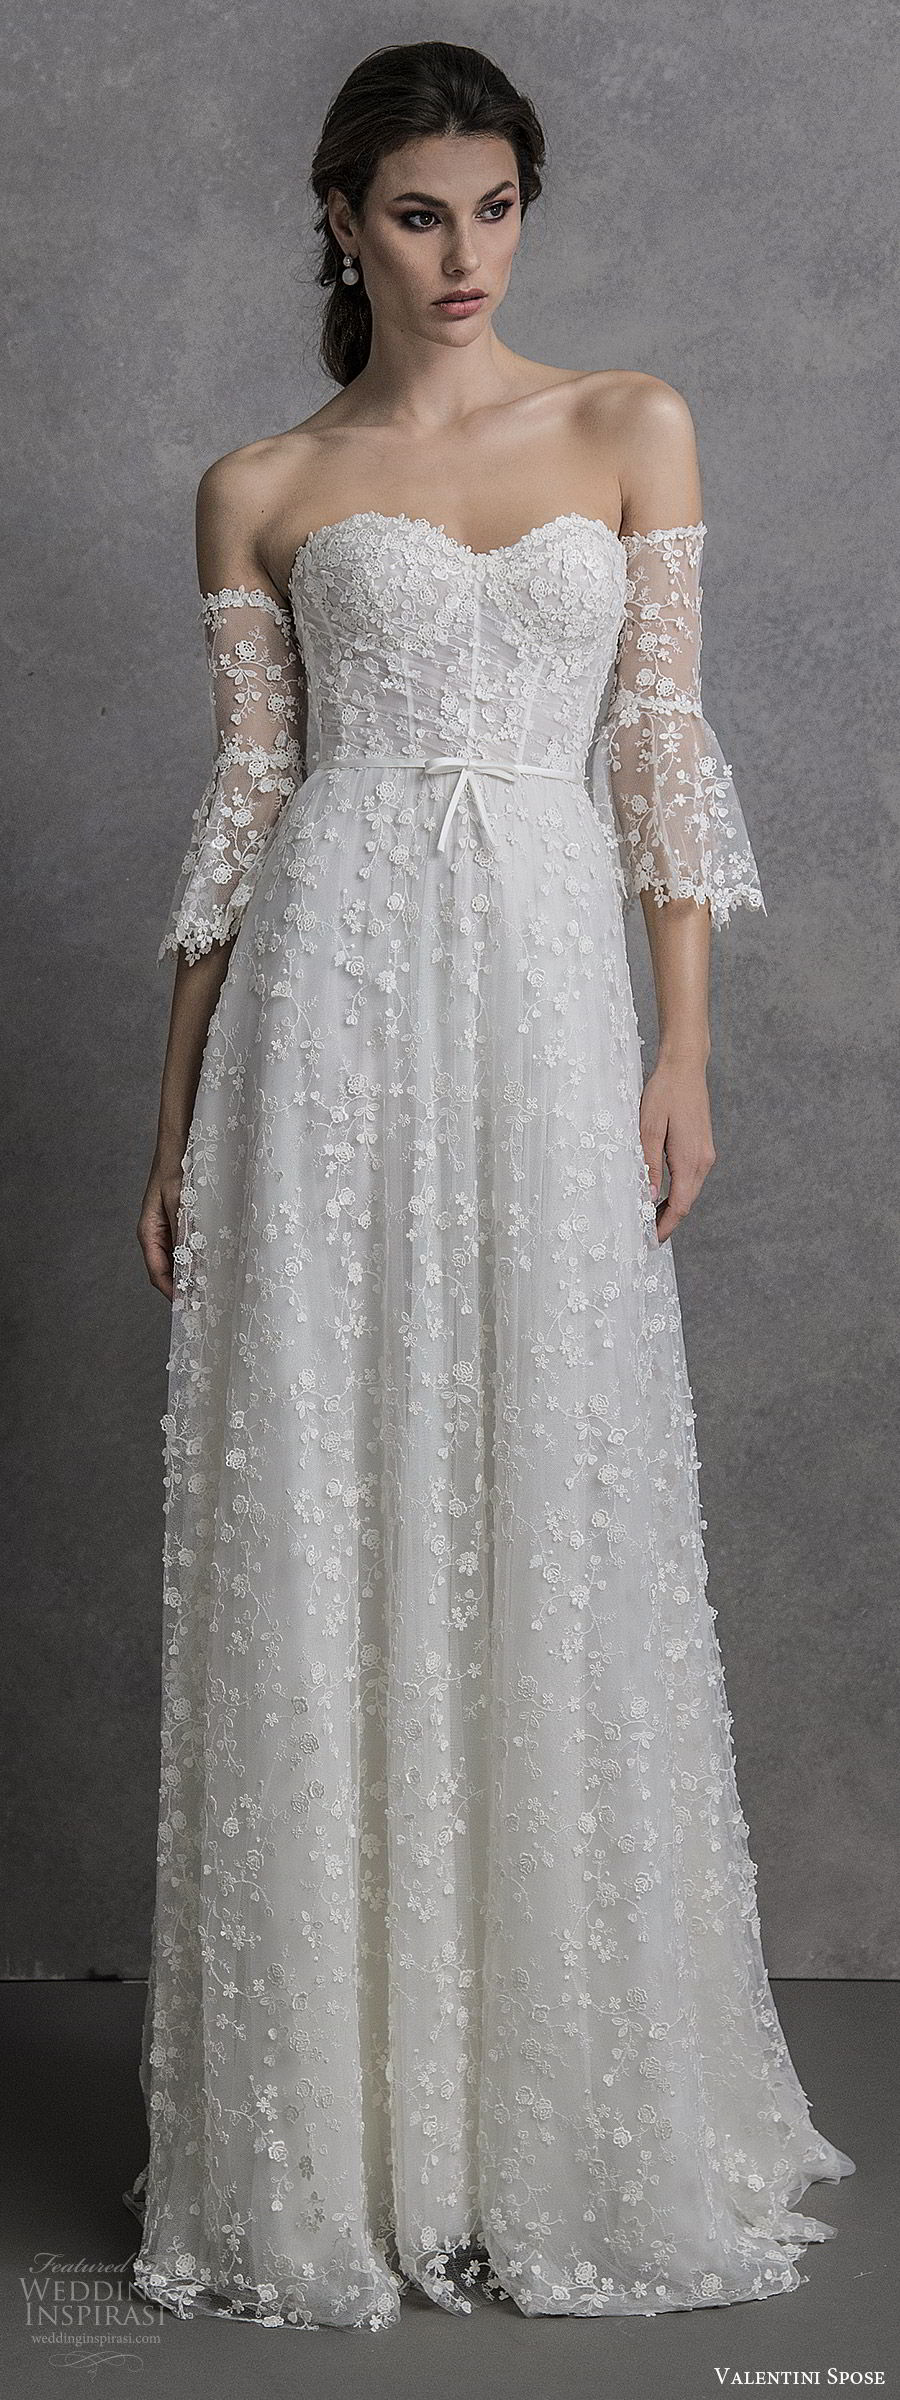 valentini spose spring 2020 bridal strapless sweetheart detached illusion bell half sleeves fully embellished soft a line wedding dress (9) sweep train boho chic romantic mv